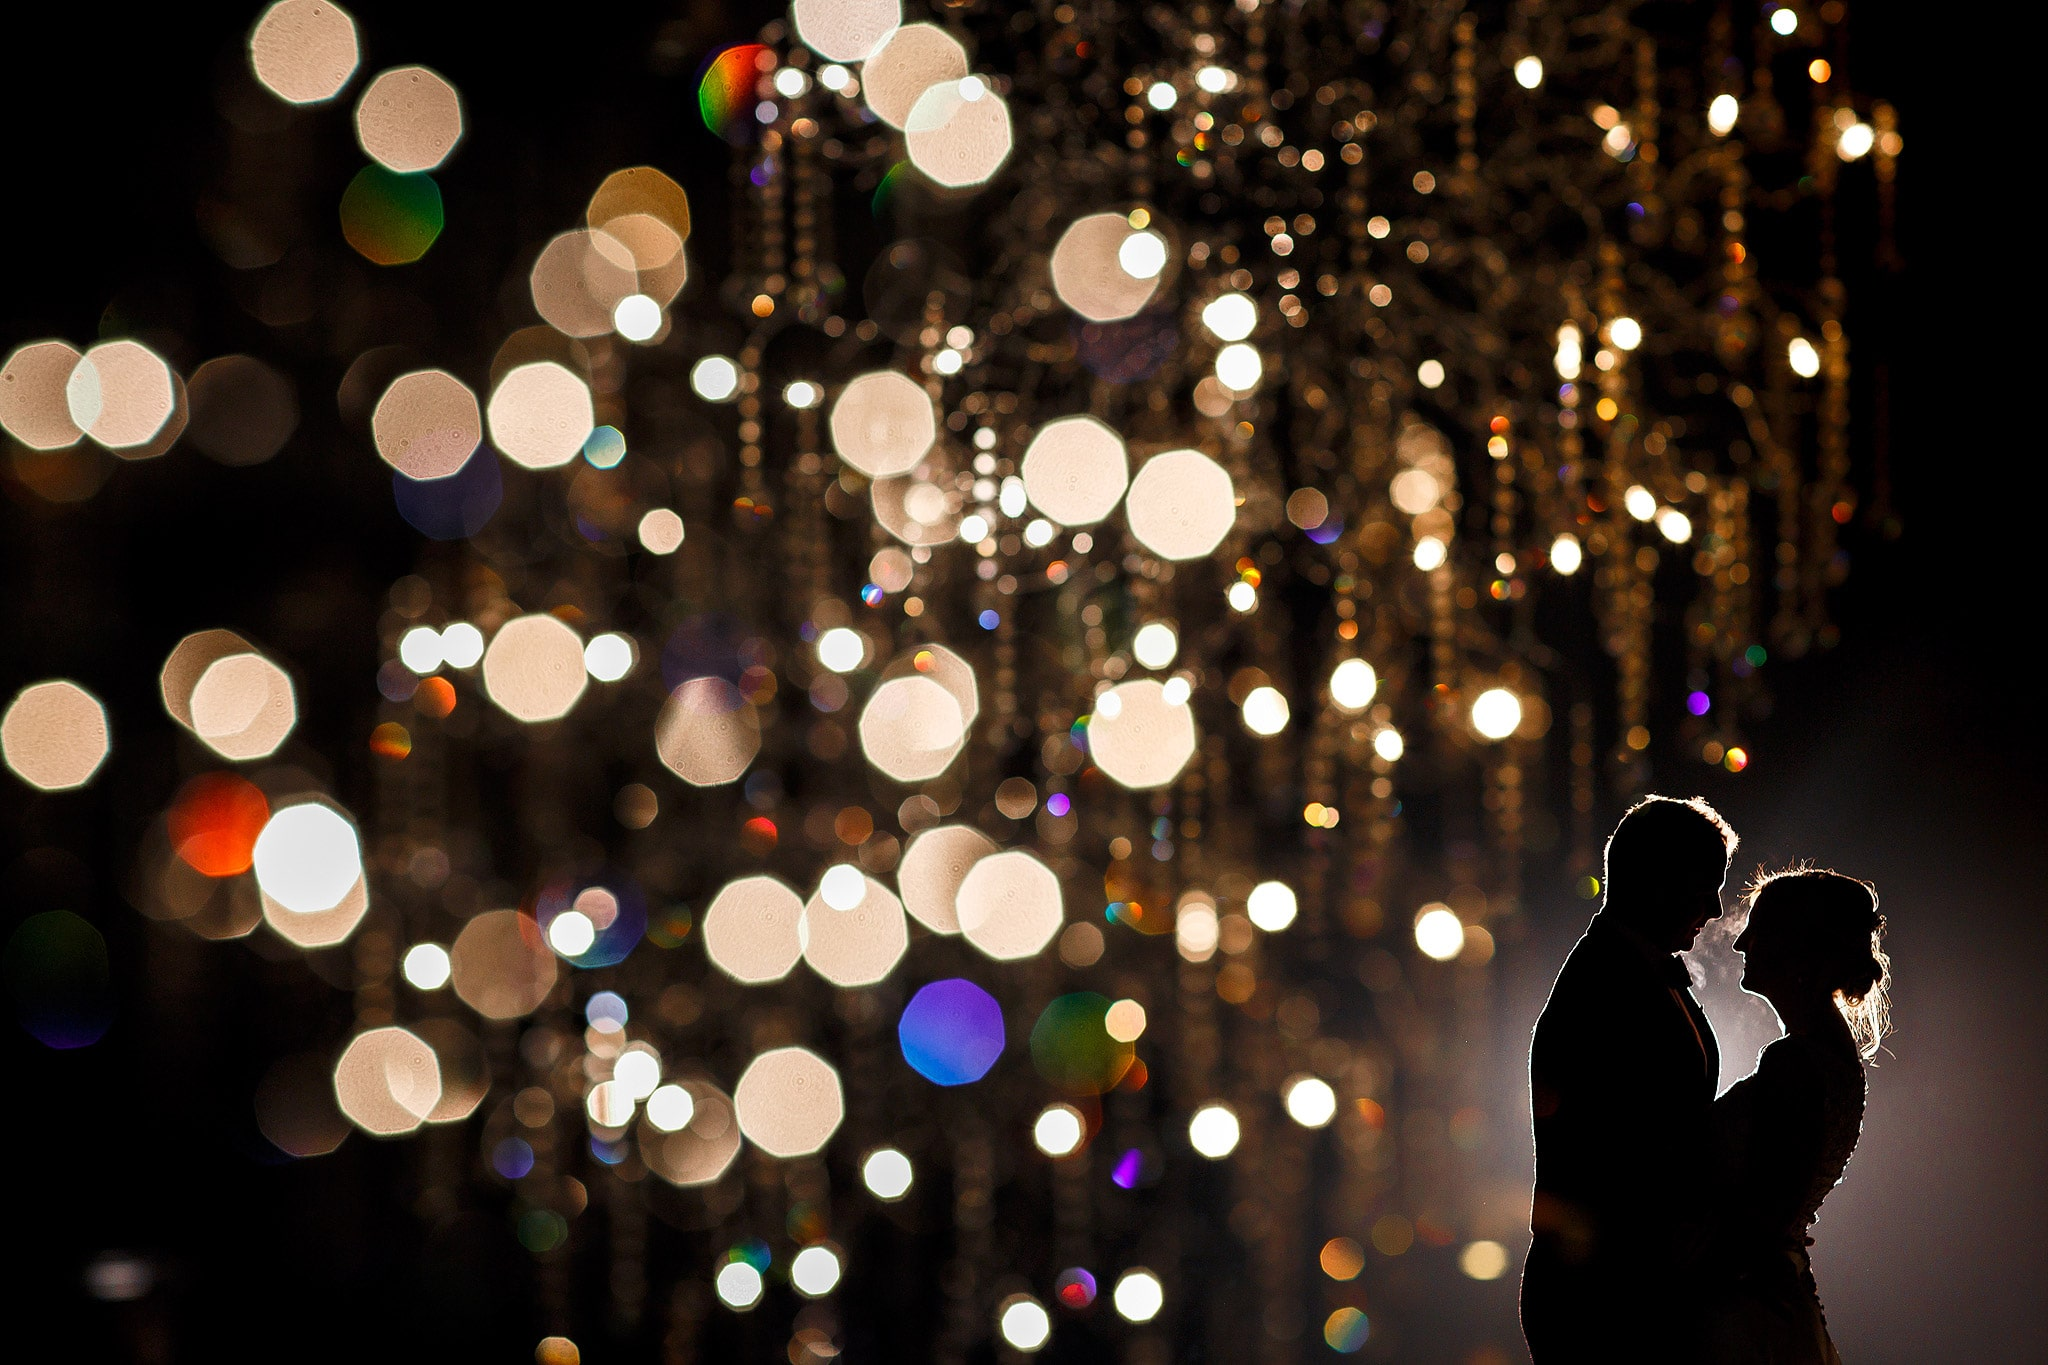 creative wedding portrait of bride and groom using lights at mitton hall